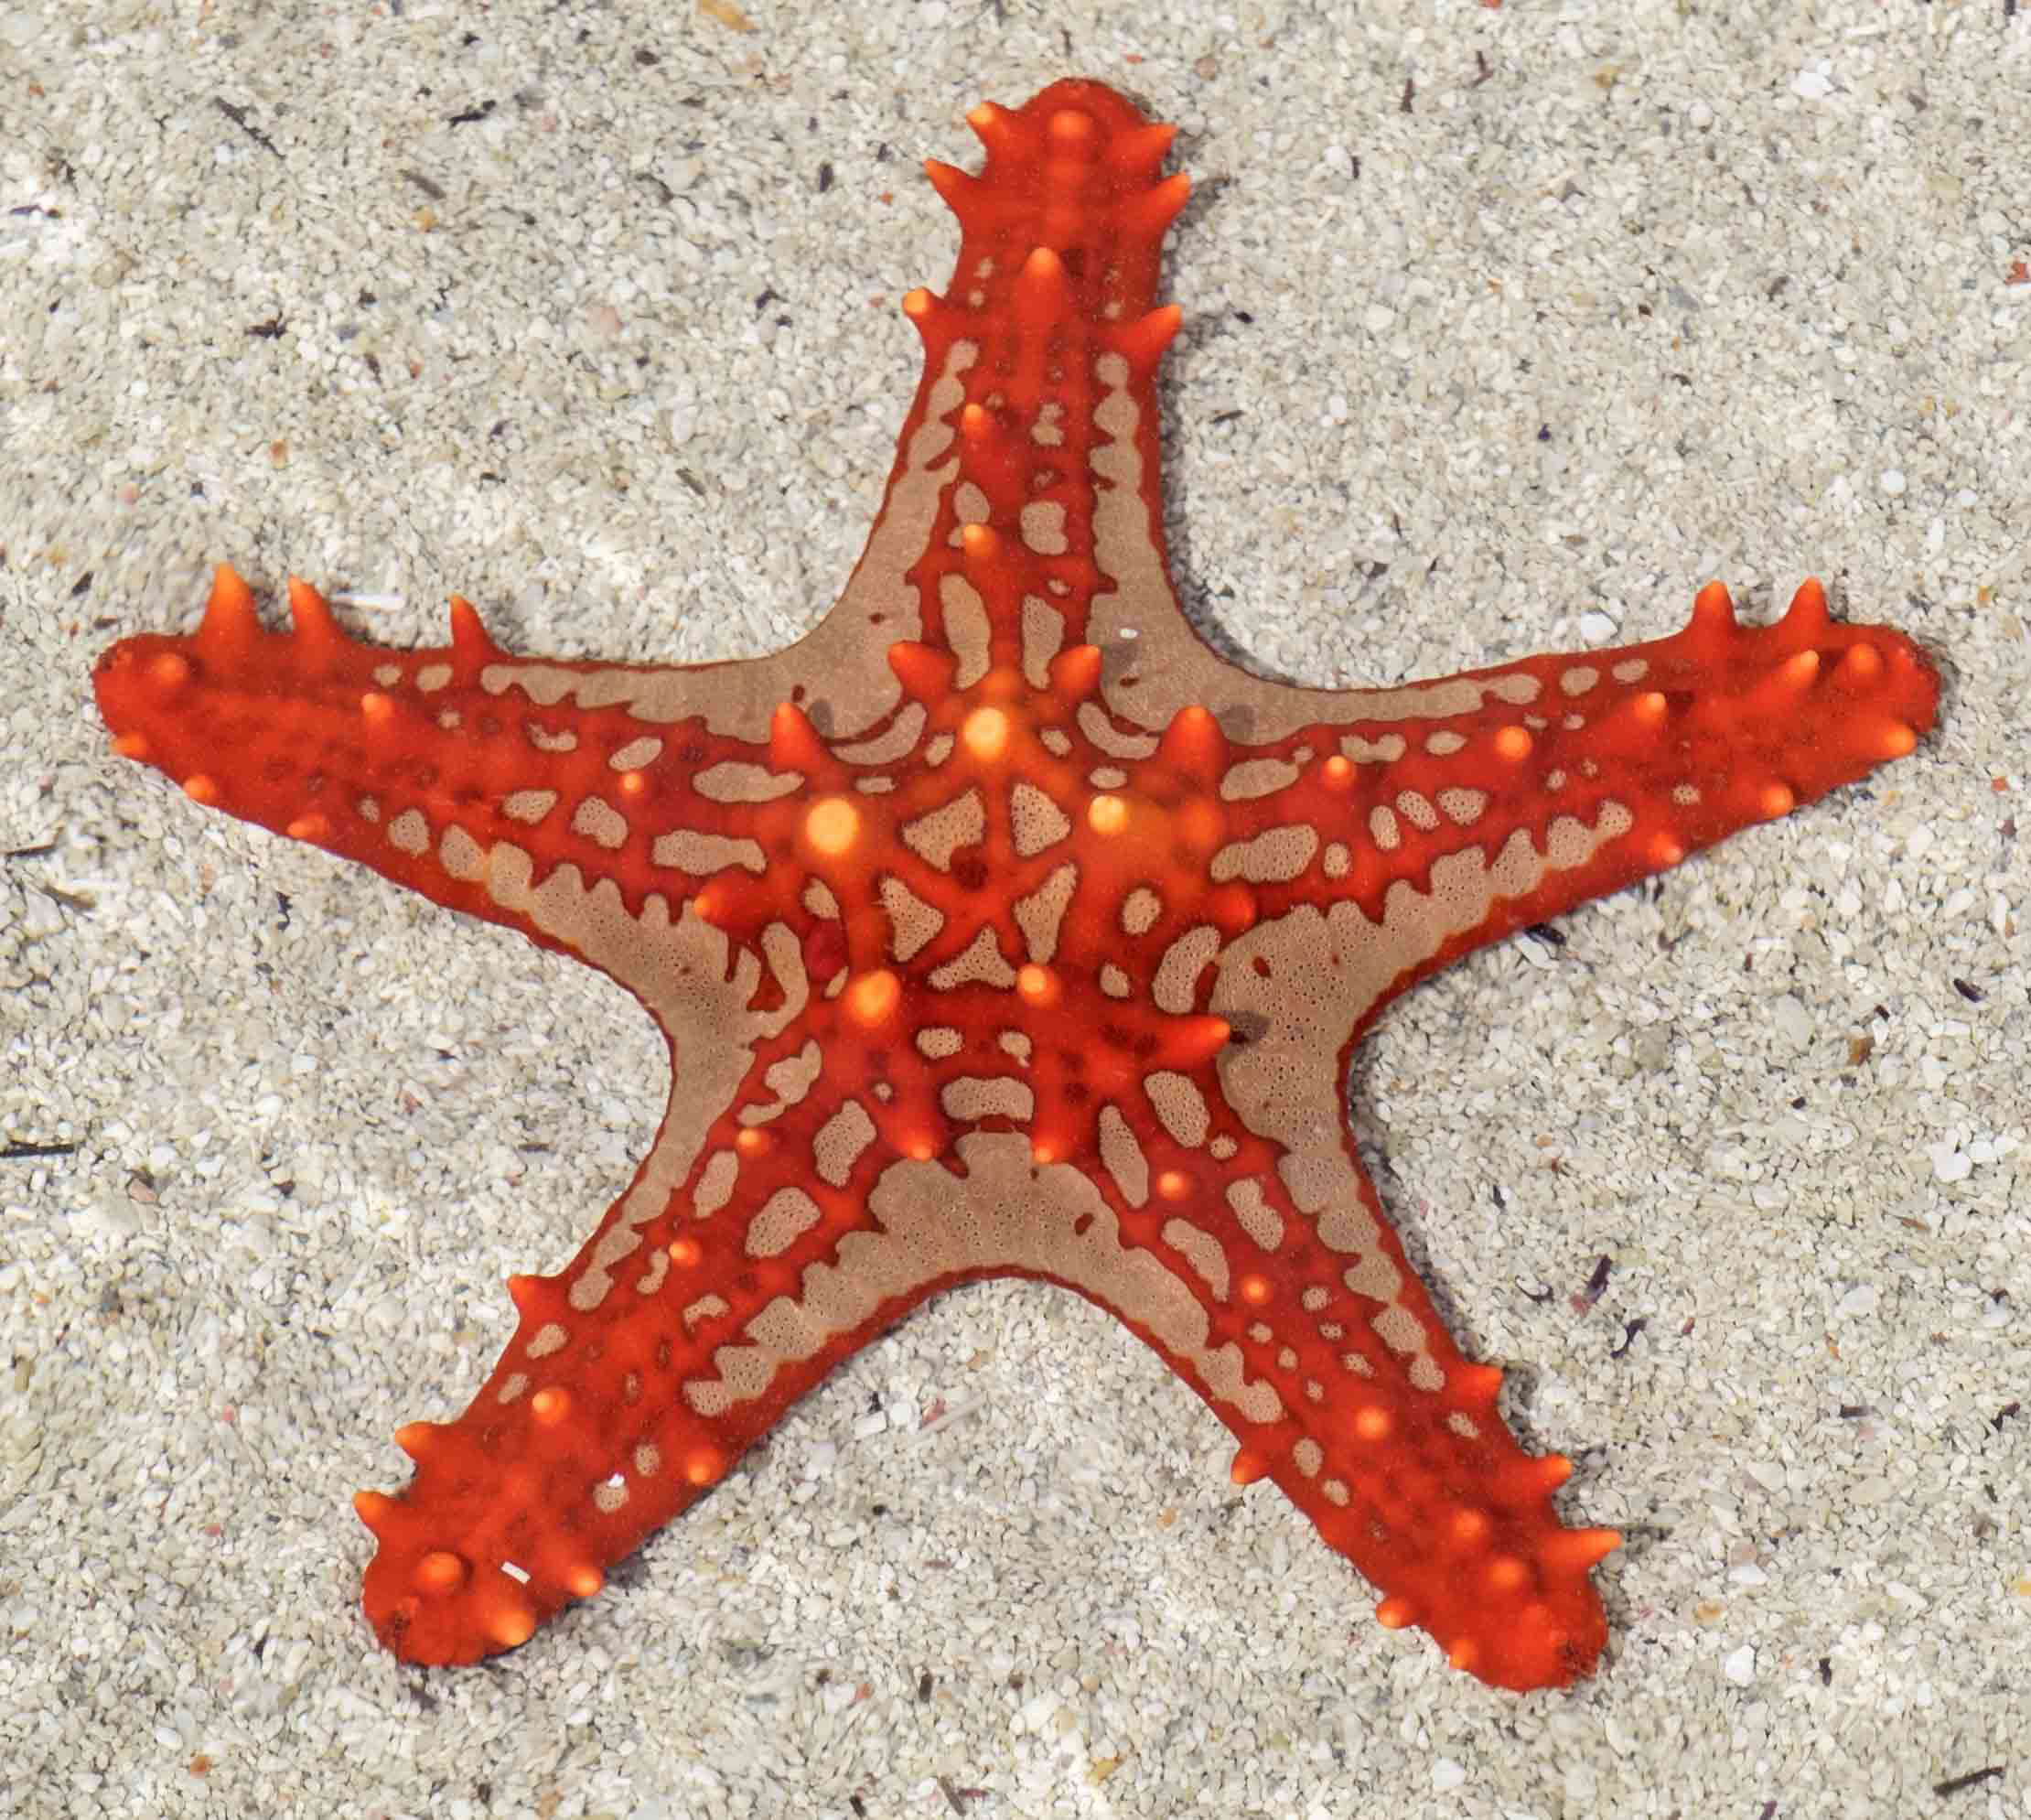 Starfish - sometimes called Sea Stars - aren't fish at all; they're related to urchins and sand dollars